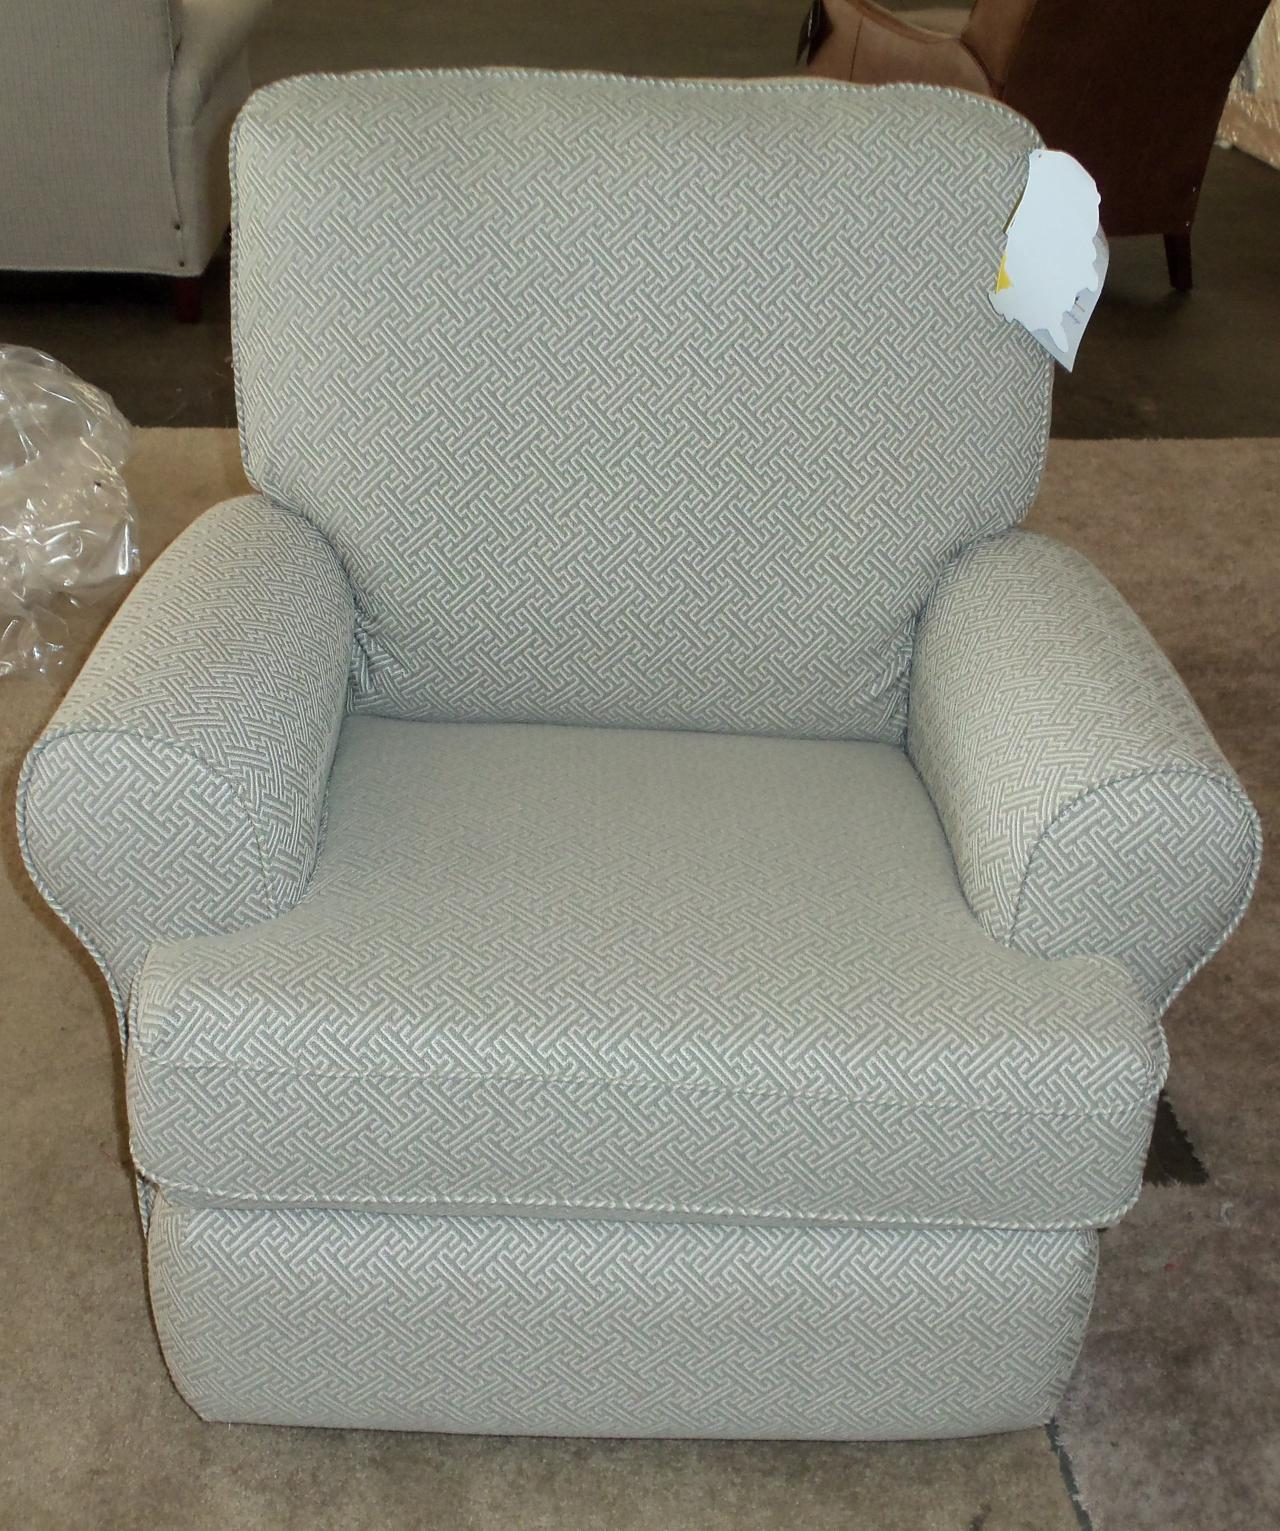 Barnett Furniture Best Home Furnishingstryp Recliner